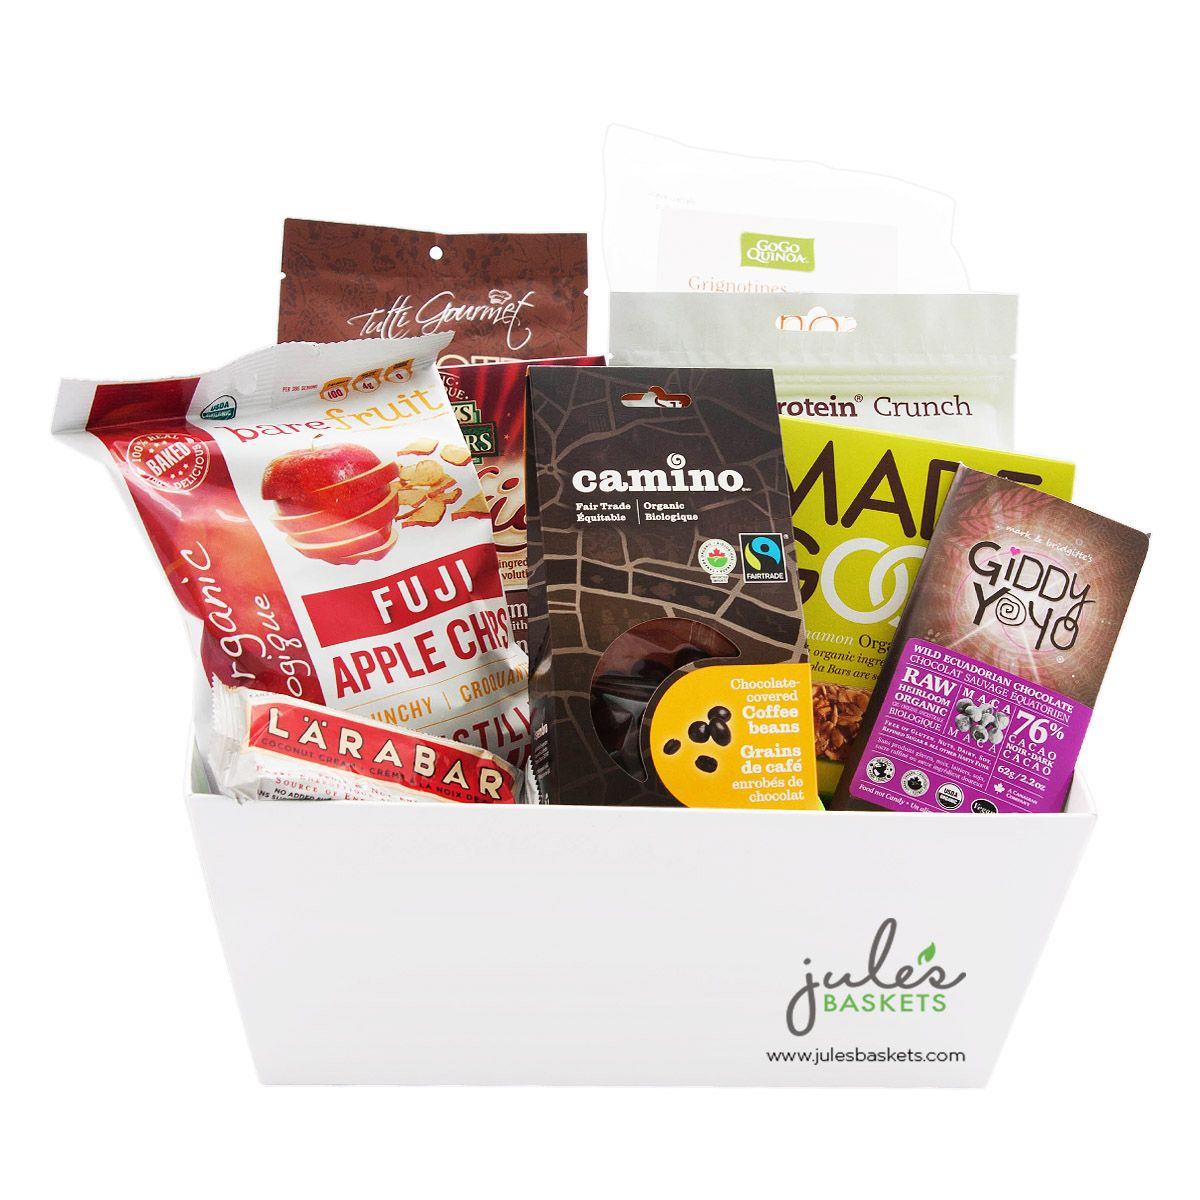 Sweets treats gluten free basket 8799 by jules baskets sweets treats gluten free basket 8799 by jules baskets treats snacks organic negle Image collections